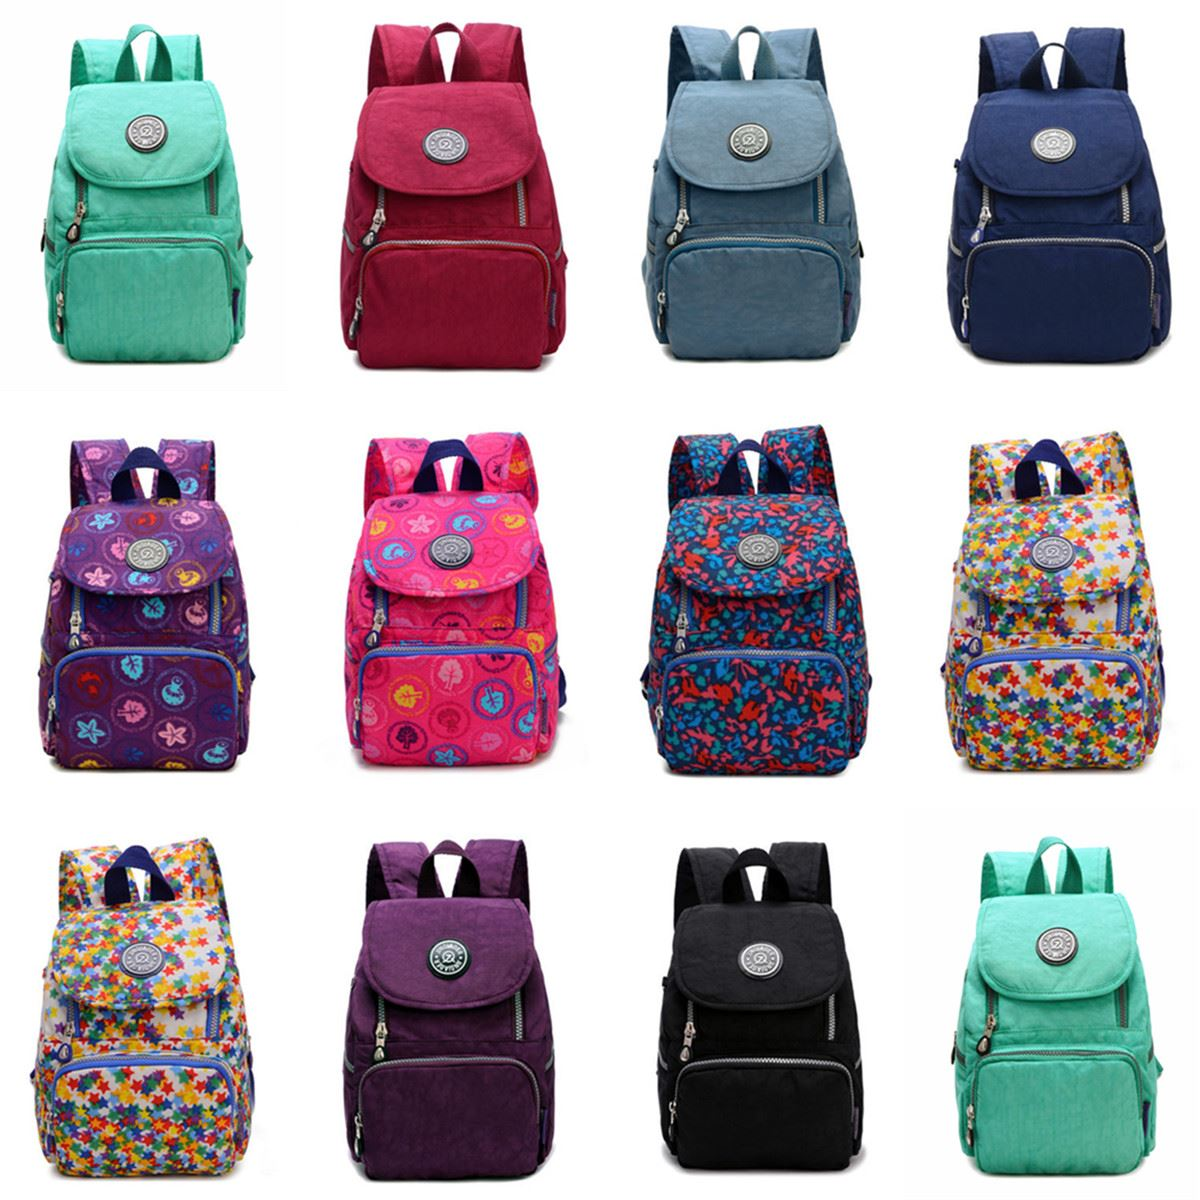 Hiking Backpacks For Women NwE9Lzd4